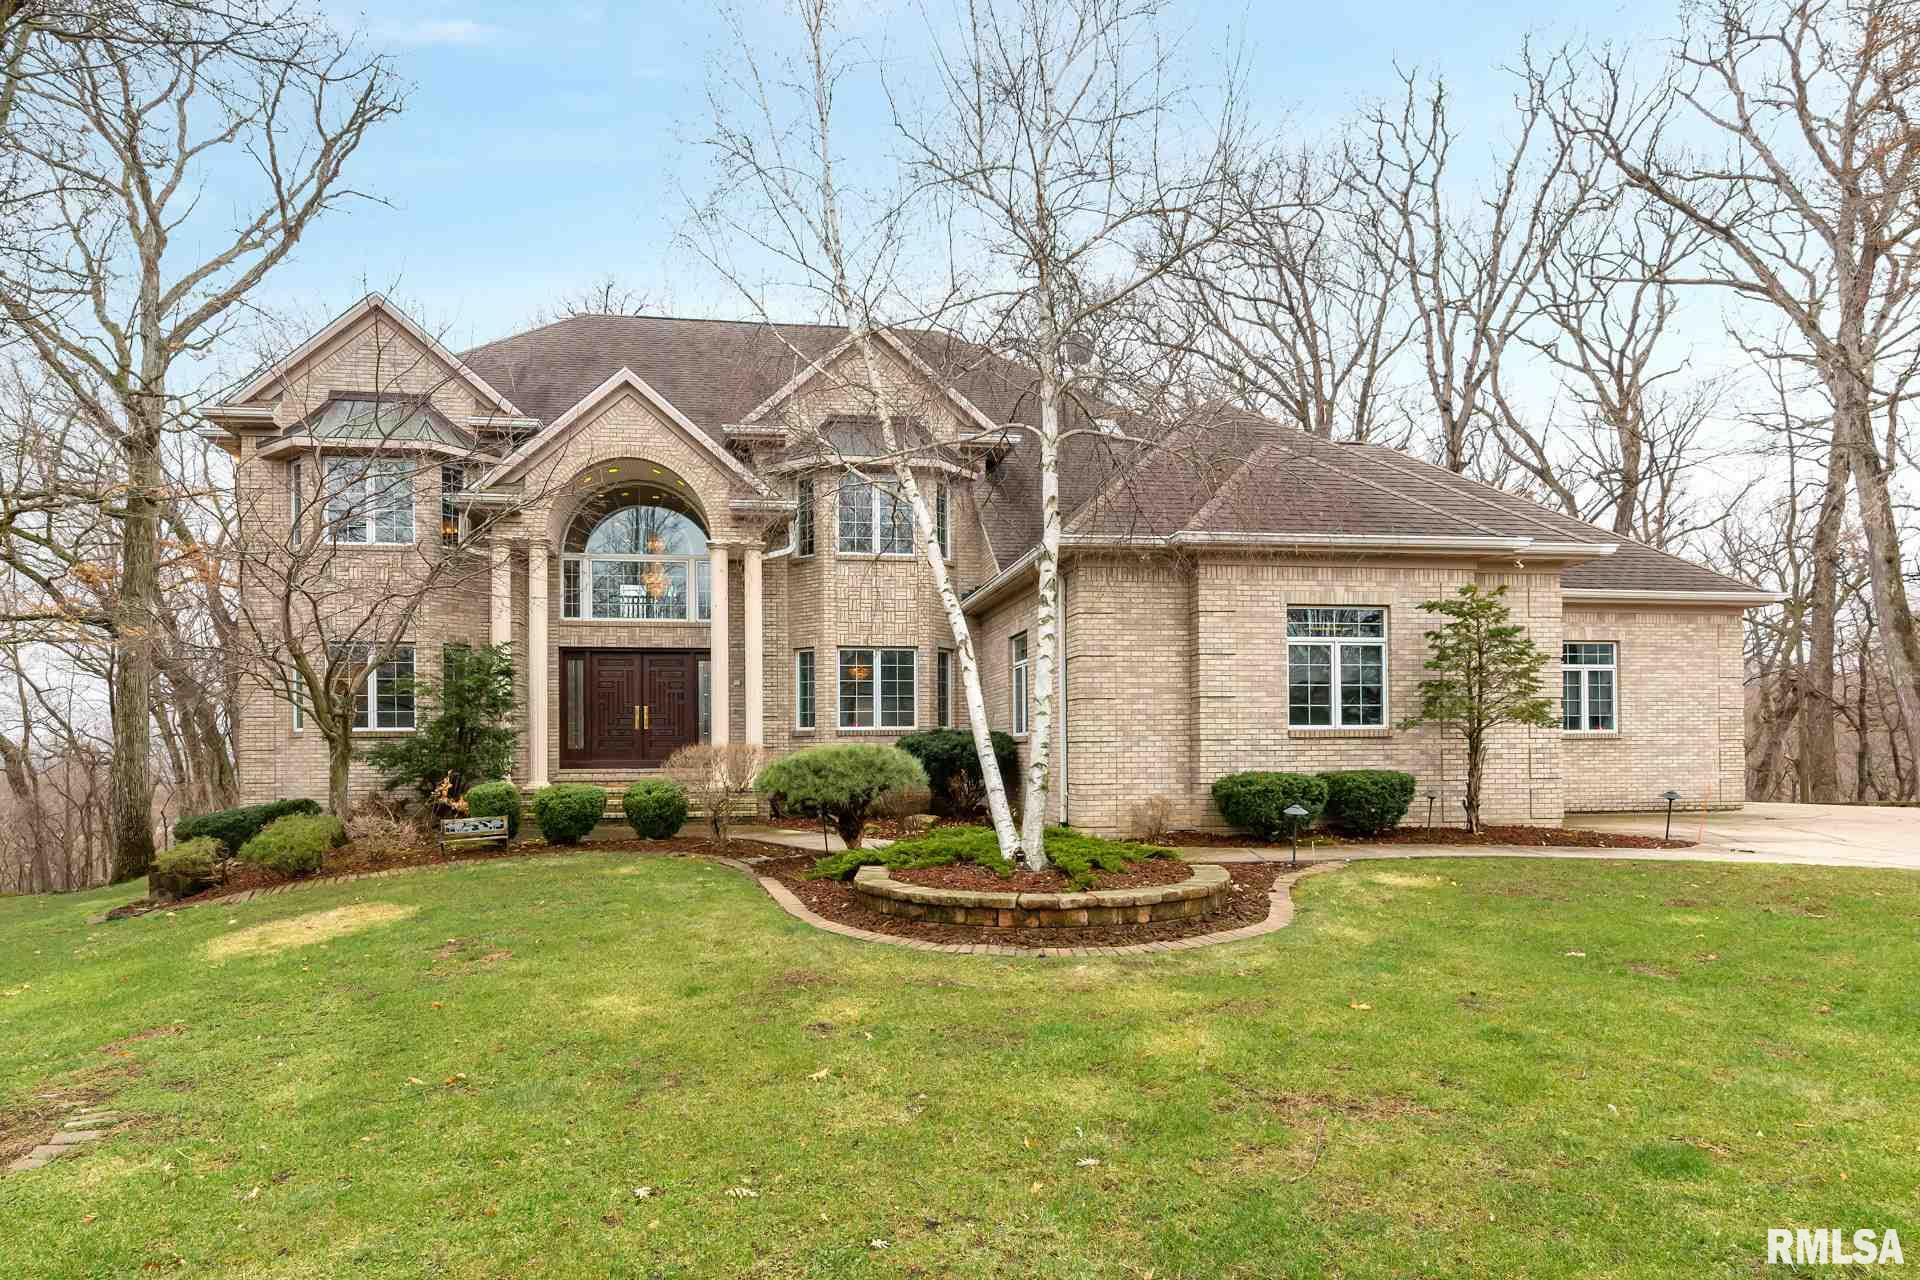 4301 42ND Property Photo - Rock Island, IL real estate listing